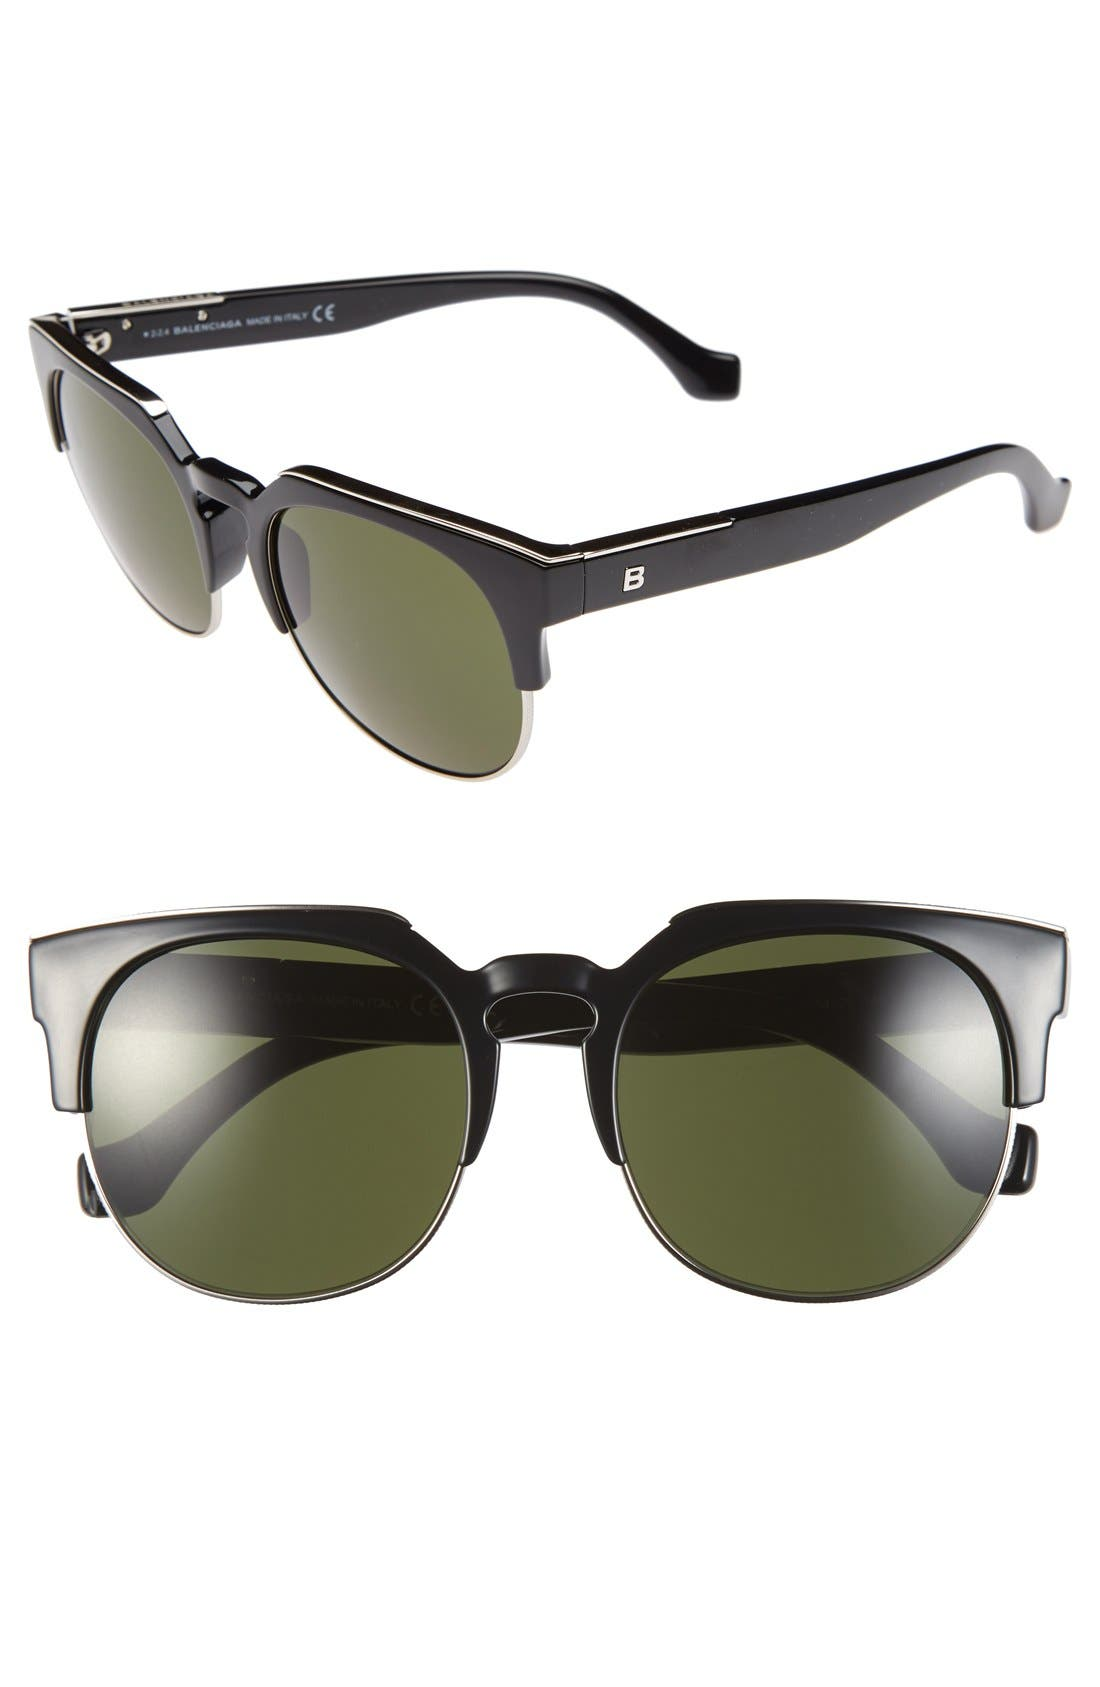 BALENCIAGA PARIS 54mm Sunglasses